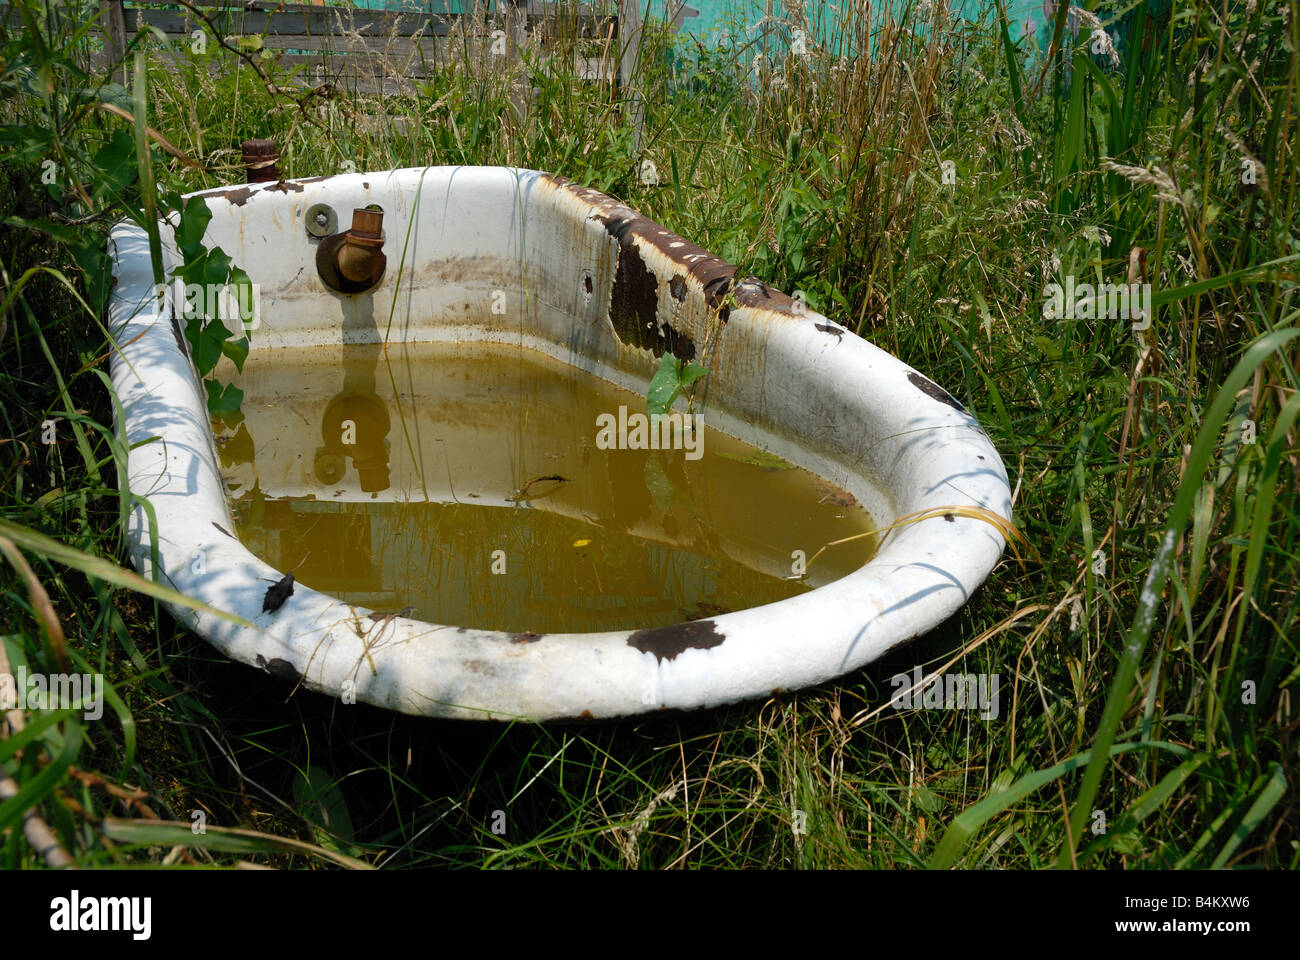 A corroded old bathtub filled with dirty water sits in a grassy ...